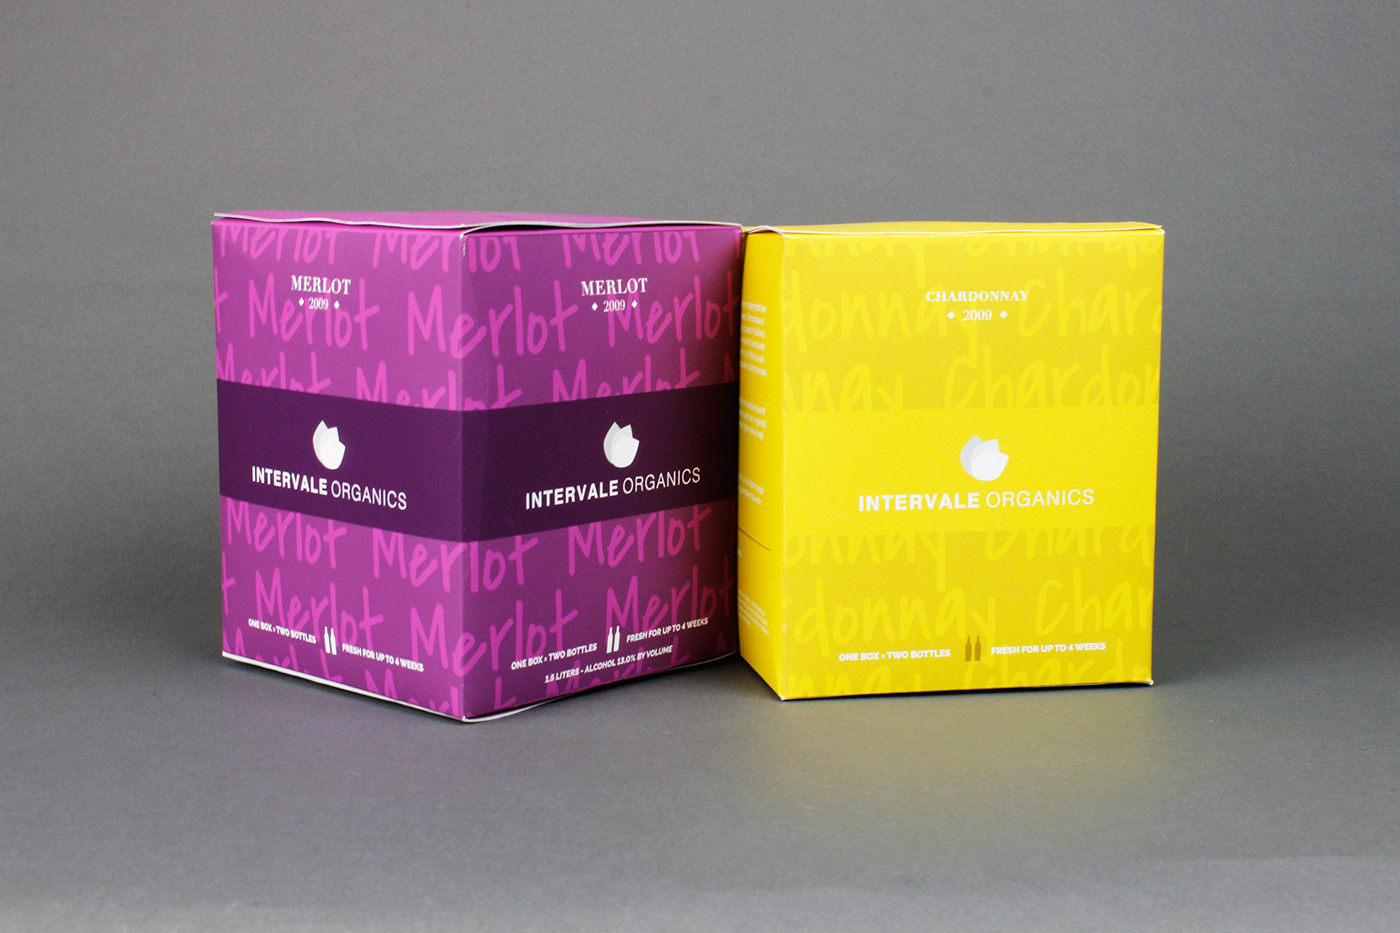 boxed wine wine product